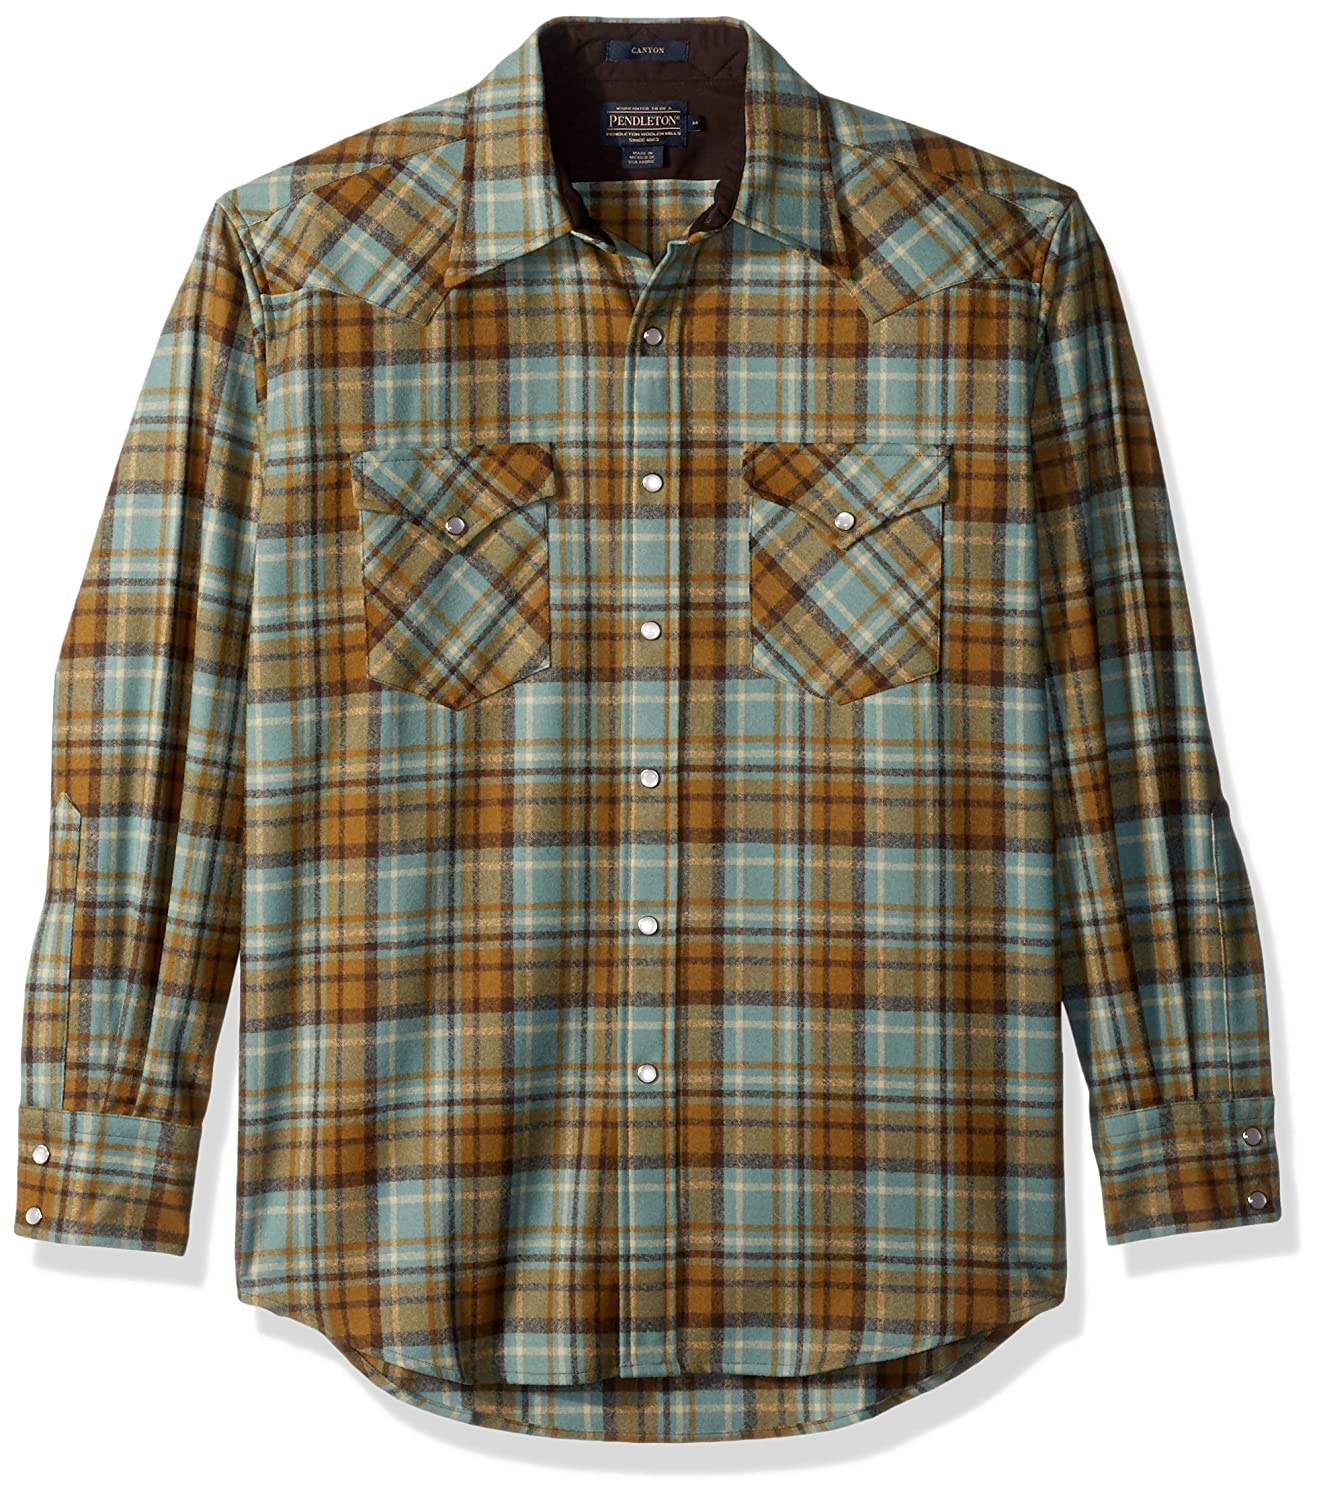 Pendleton メンズ長袖キャニオンシャツ B06XPRMYMB L|Mint/Bronze Plaid Mint/Bronze Plaid L